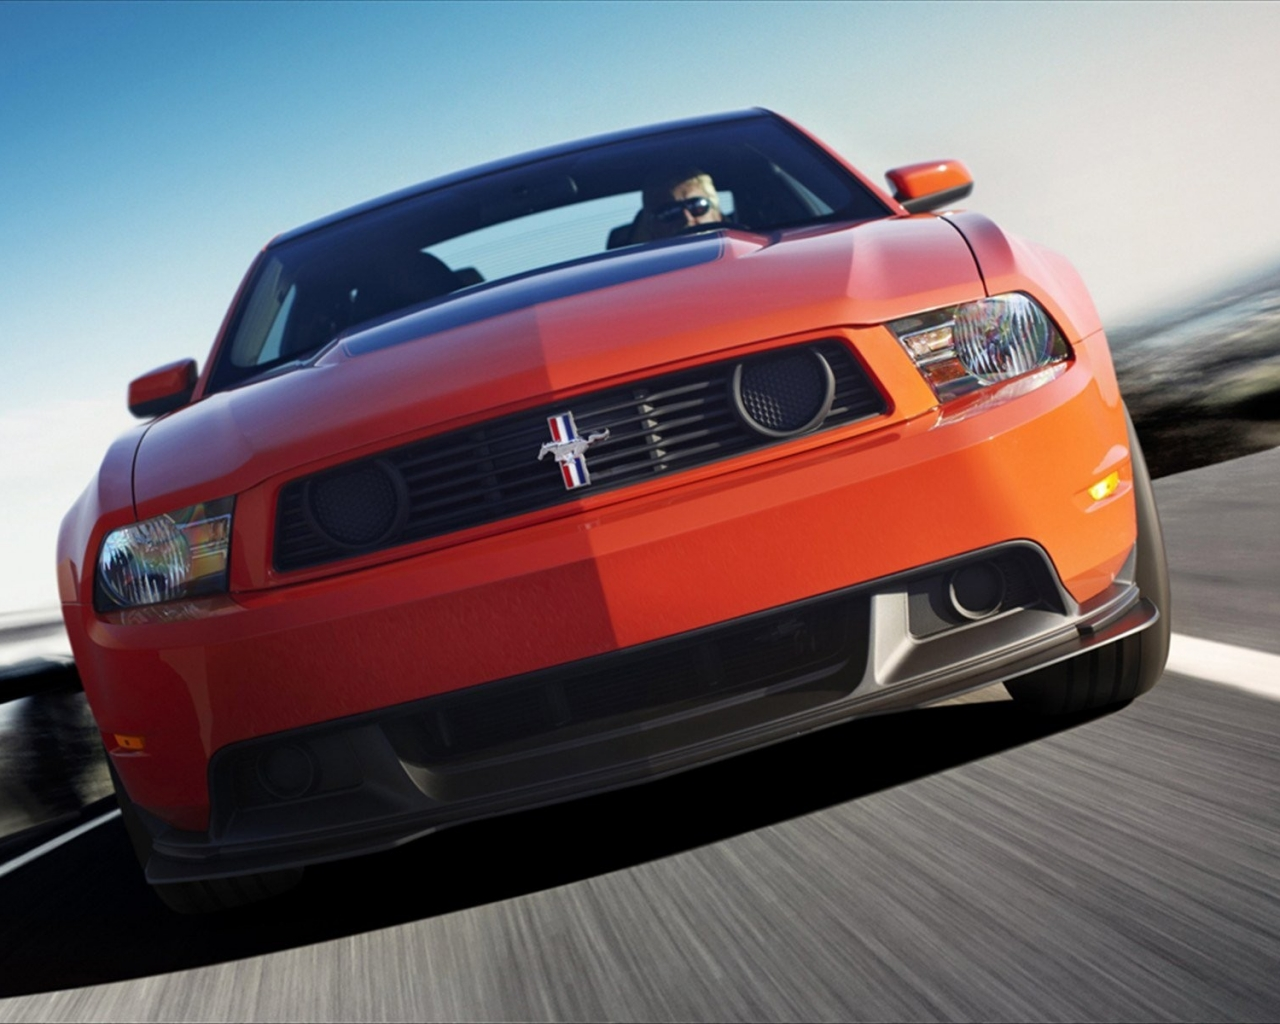 Ford Mustang Boss 302 - 1280x1024